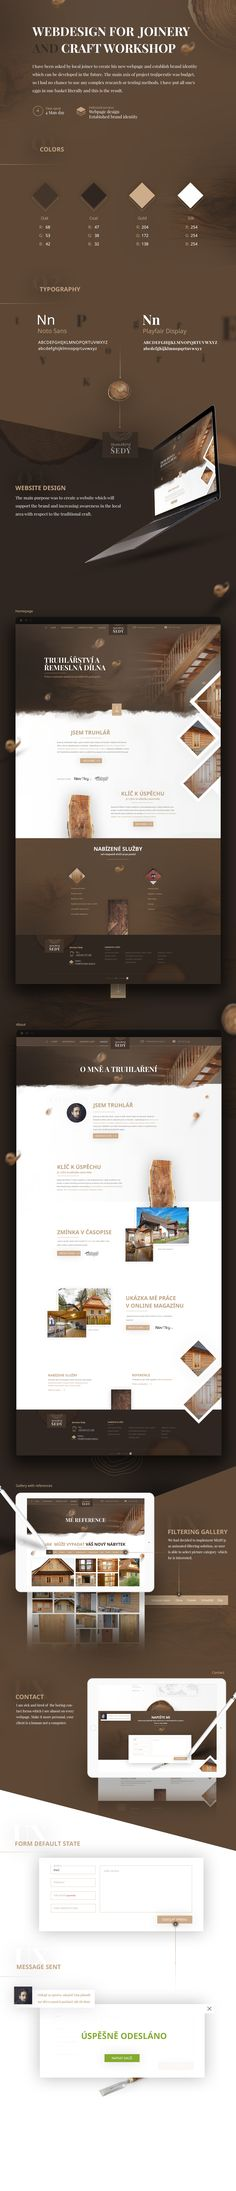 Webdesign for Joinery and local workshop Web Design, Joinery, Workshop, Creative, Crafts, Behance, Carving, Design Web, Woodworking